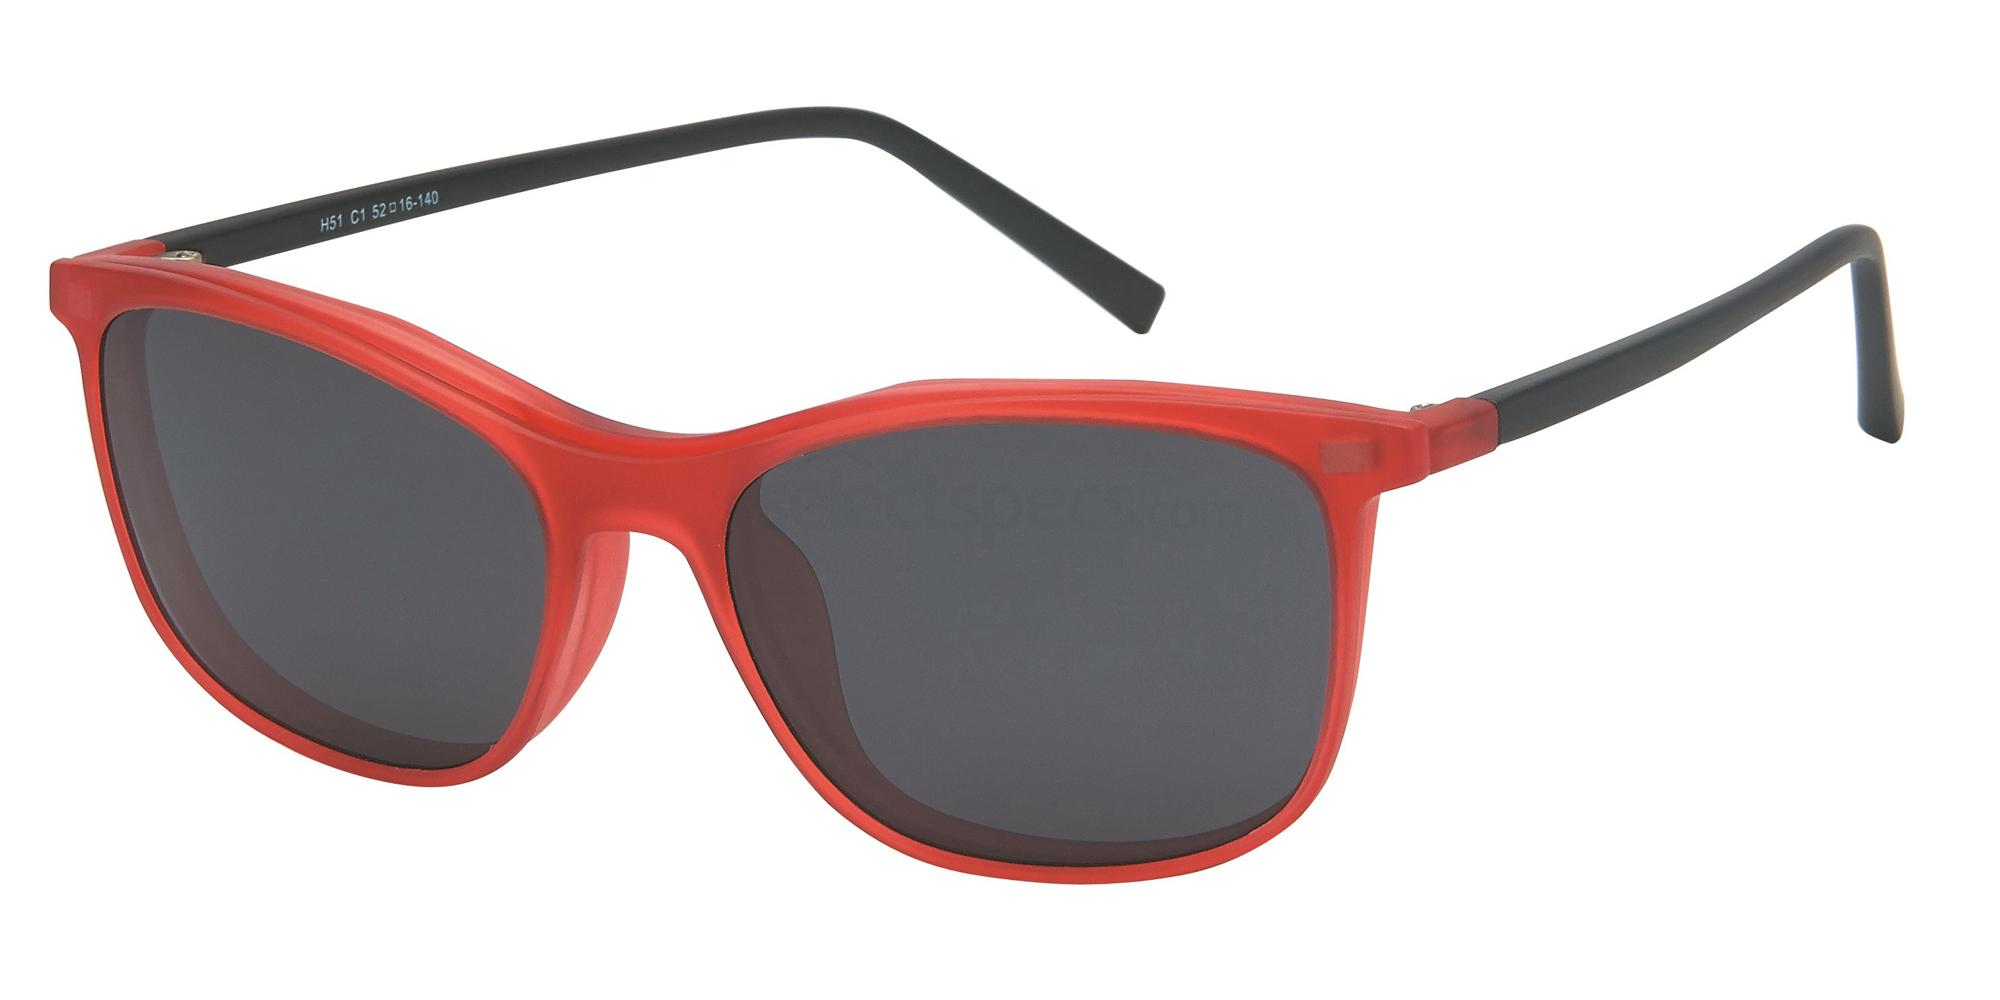 C1 H51 - With Clip on Glasses, Halstrom